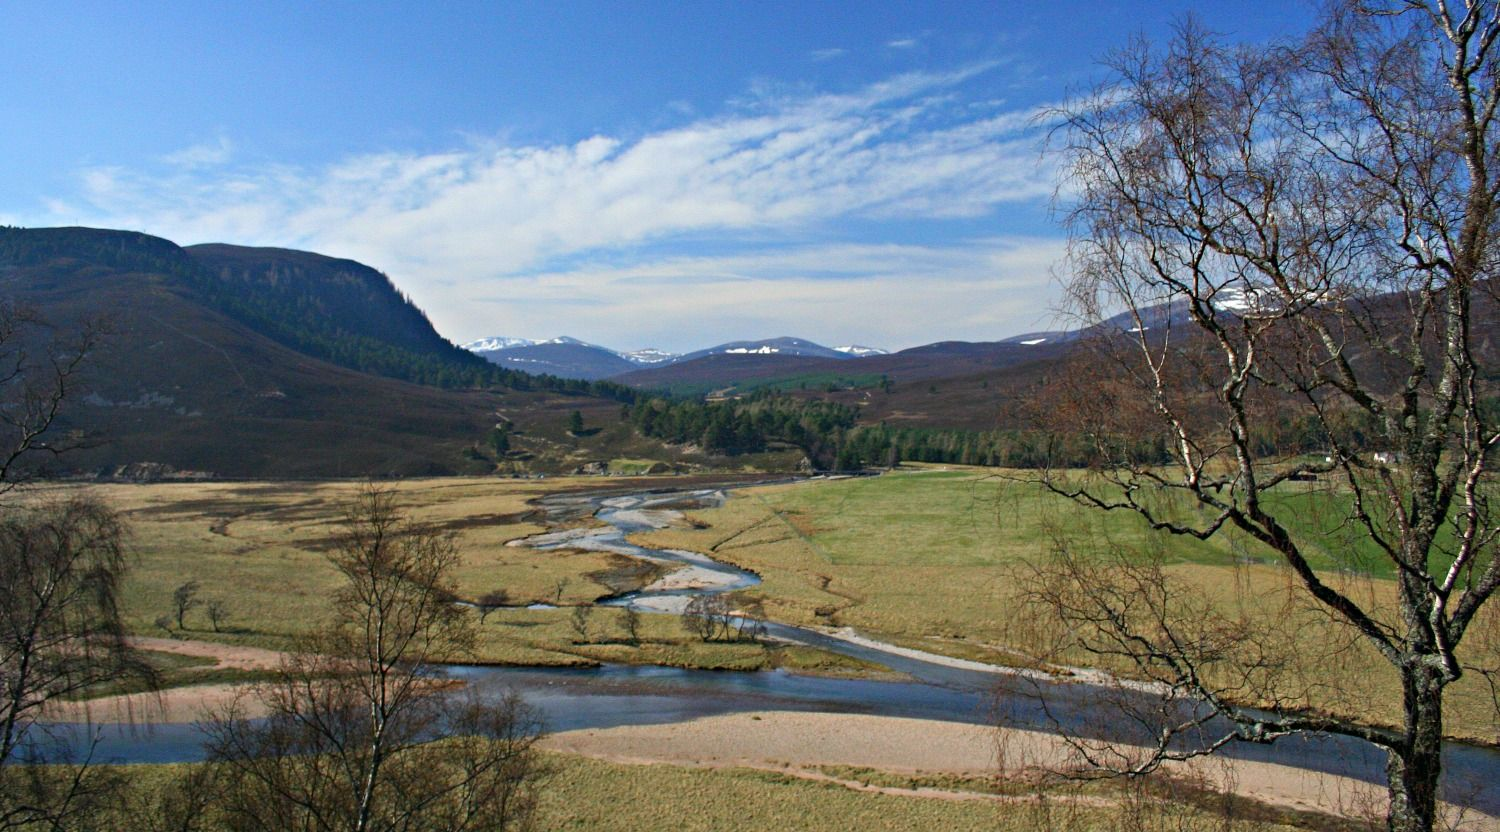 In upper Deeside, looking north on the road between Braemar and Inverey. The meltwaters of the Quoich run down to join the young River Dee. Still some snow on the Cairngorms above. DATE: 13 April 2007.